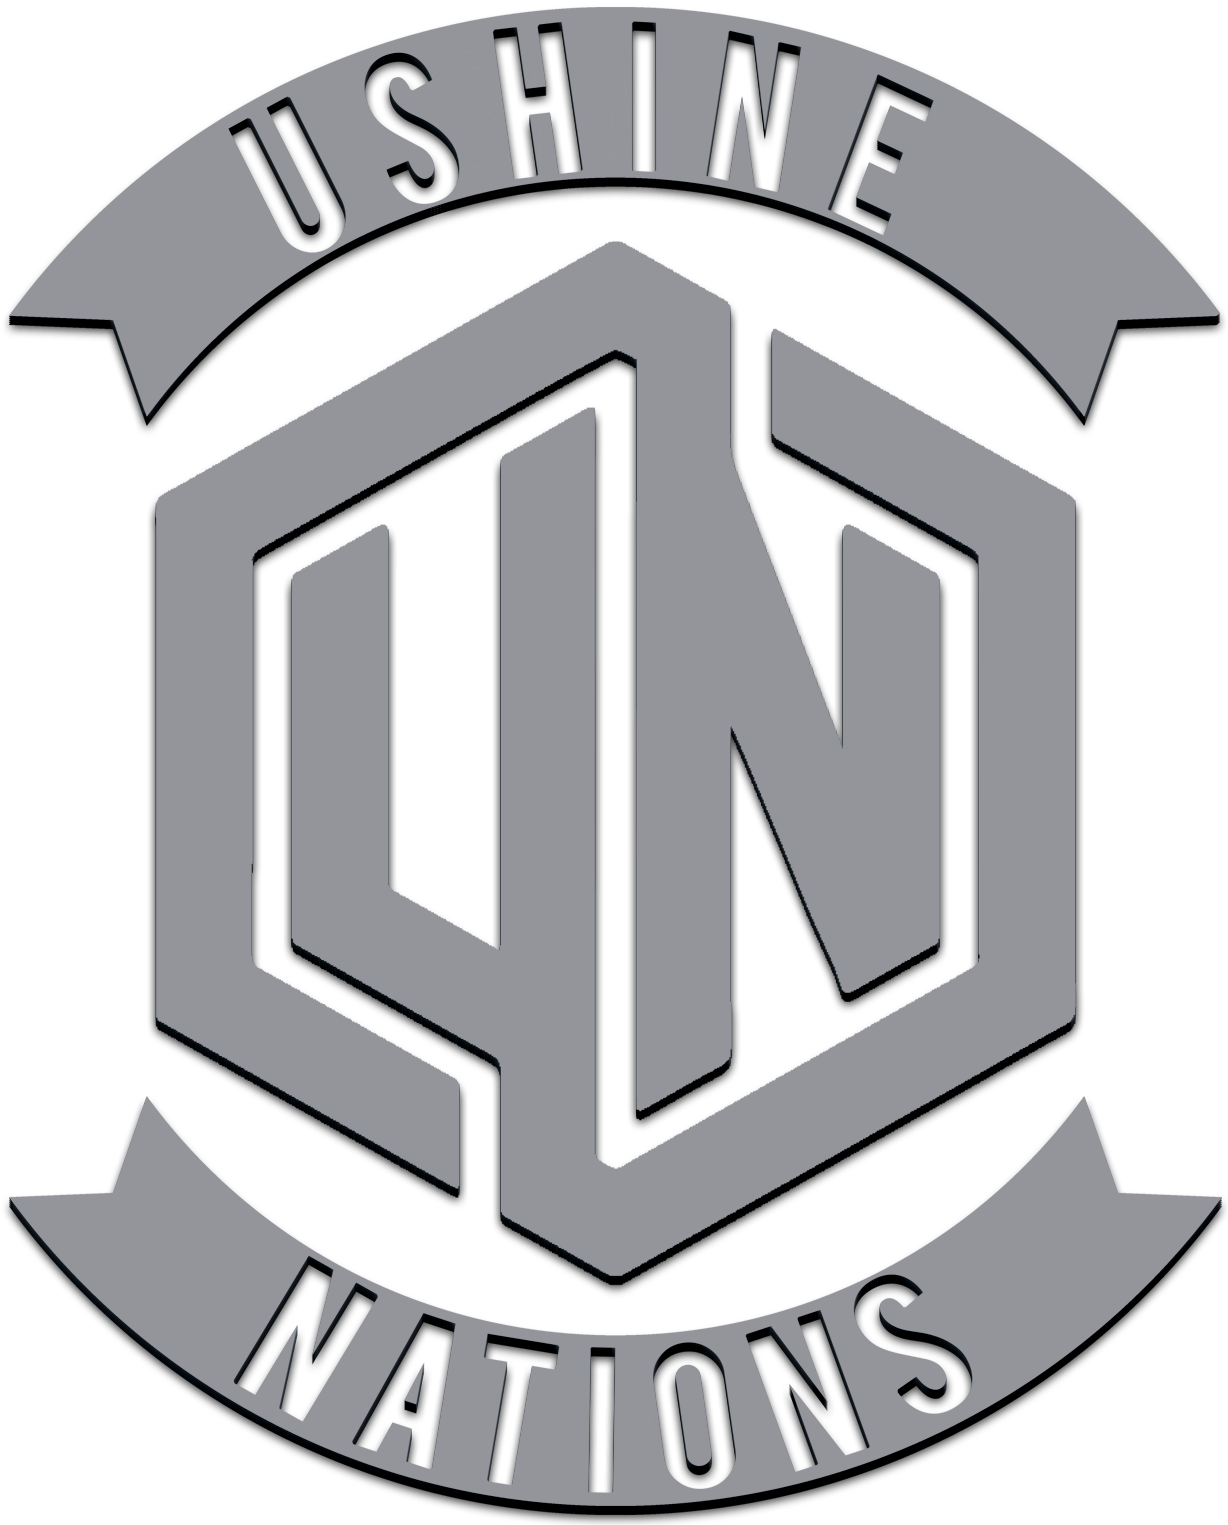 Event Management | Ushine Nations